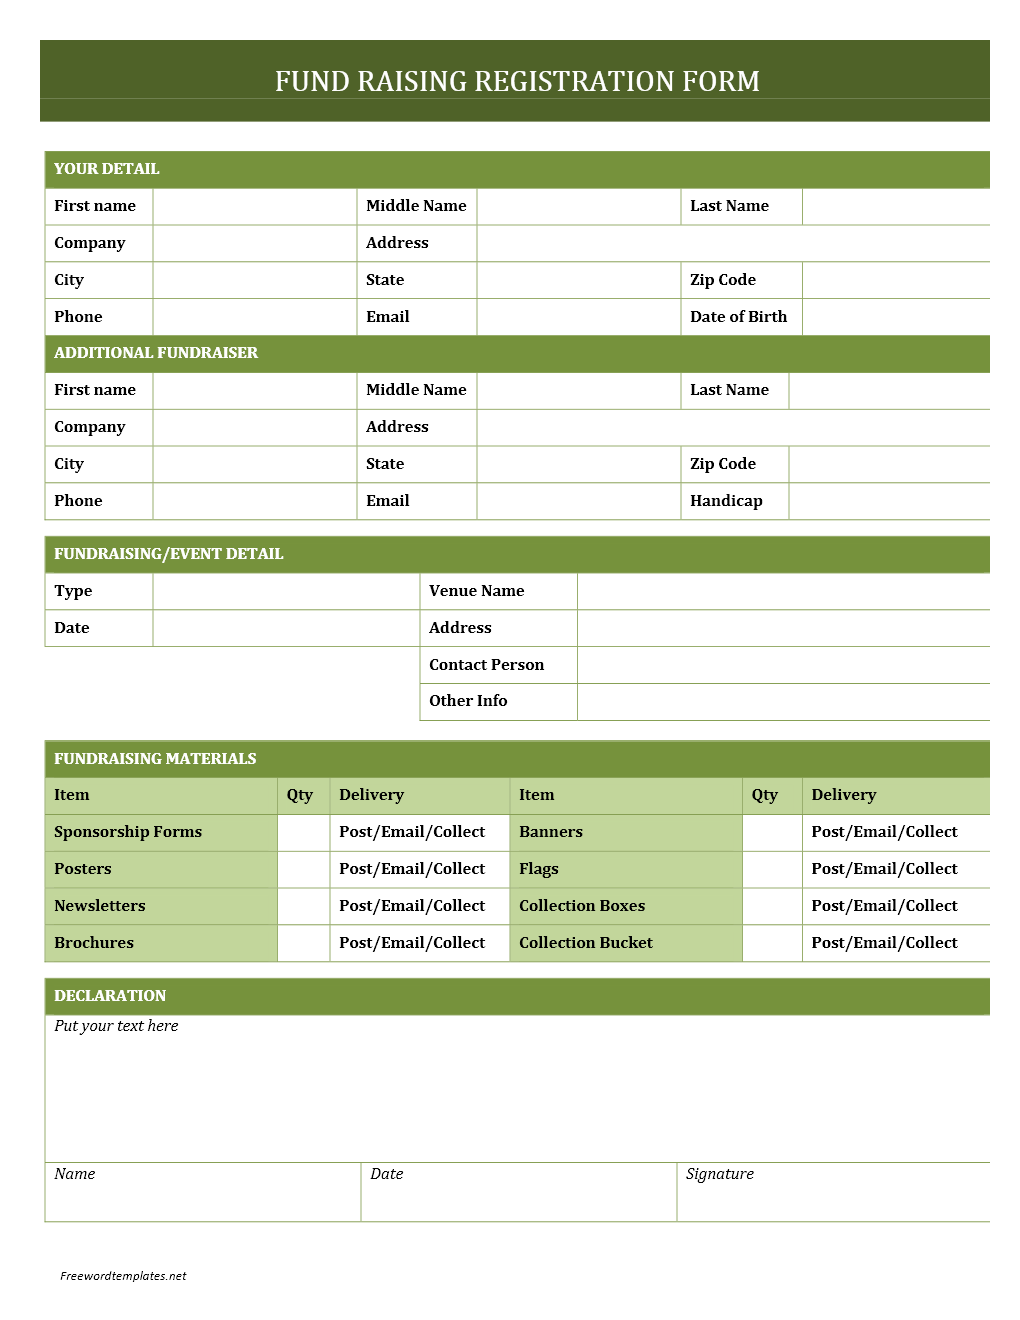 event booking form template word - fundraising registration form